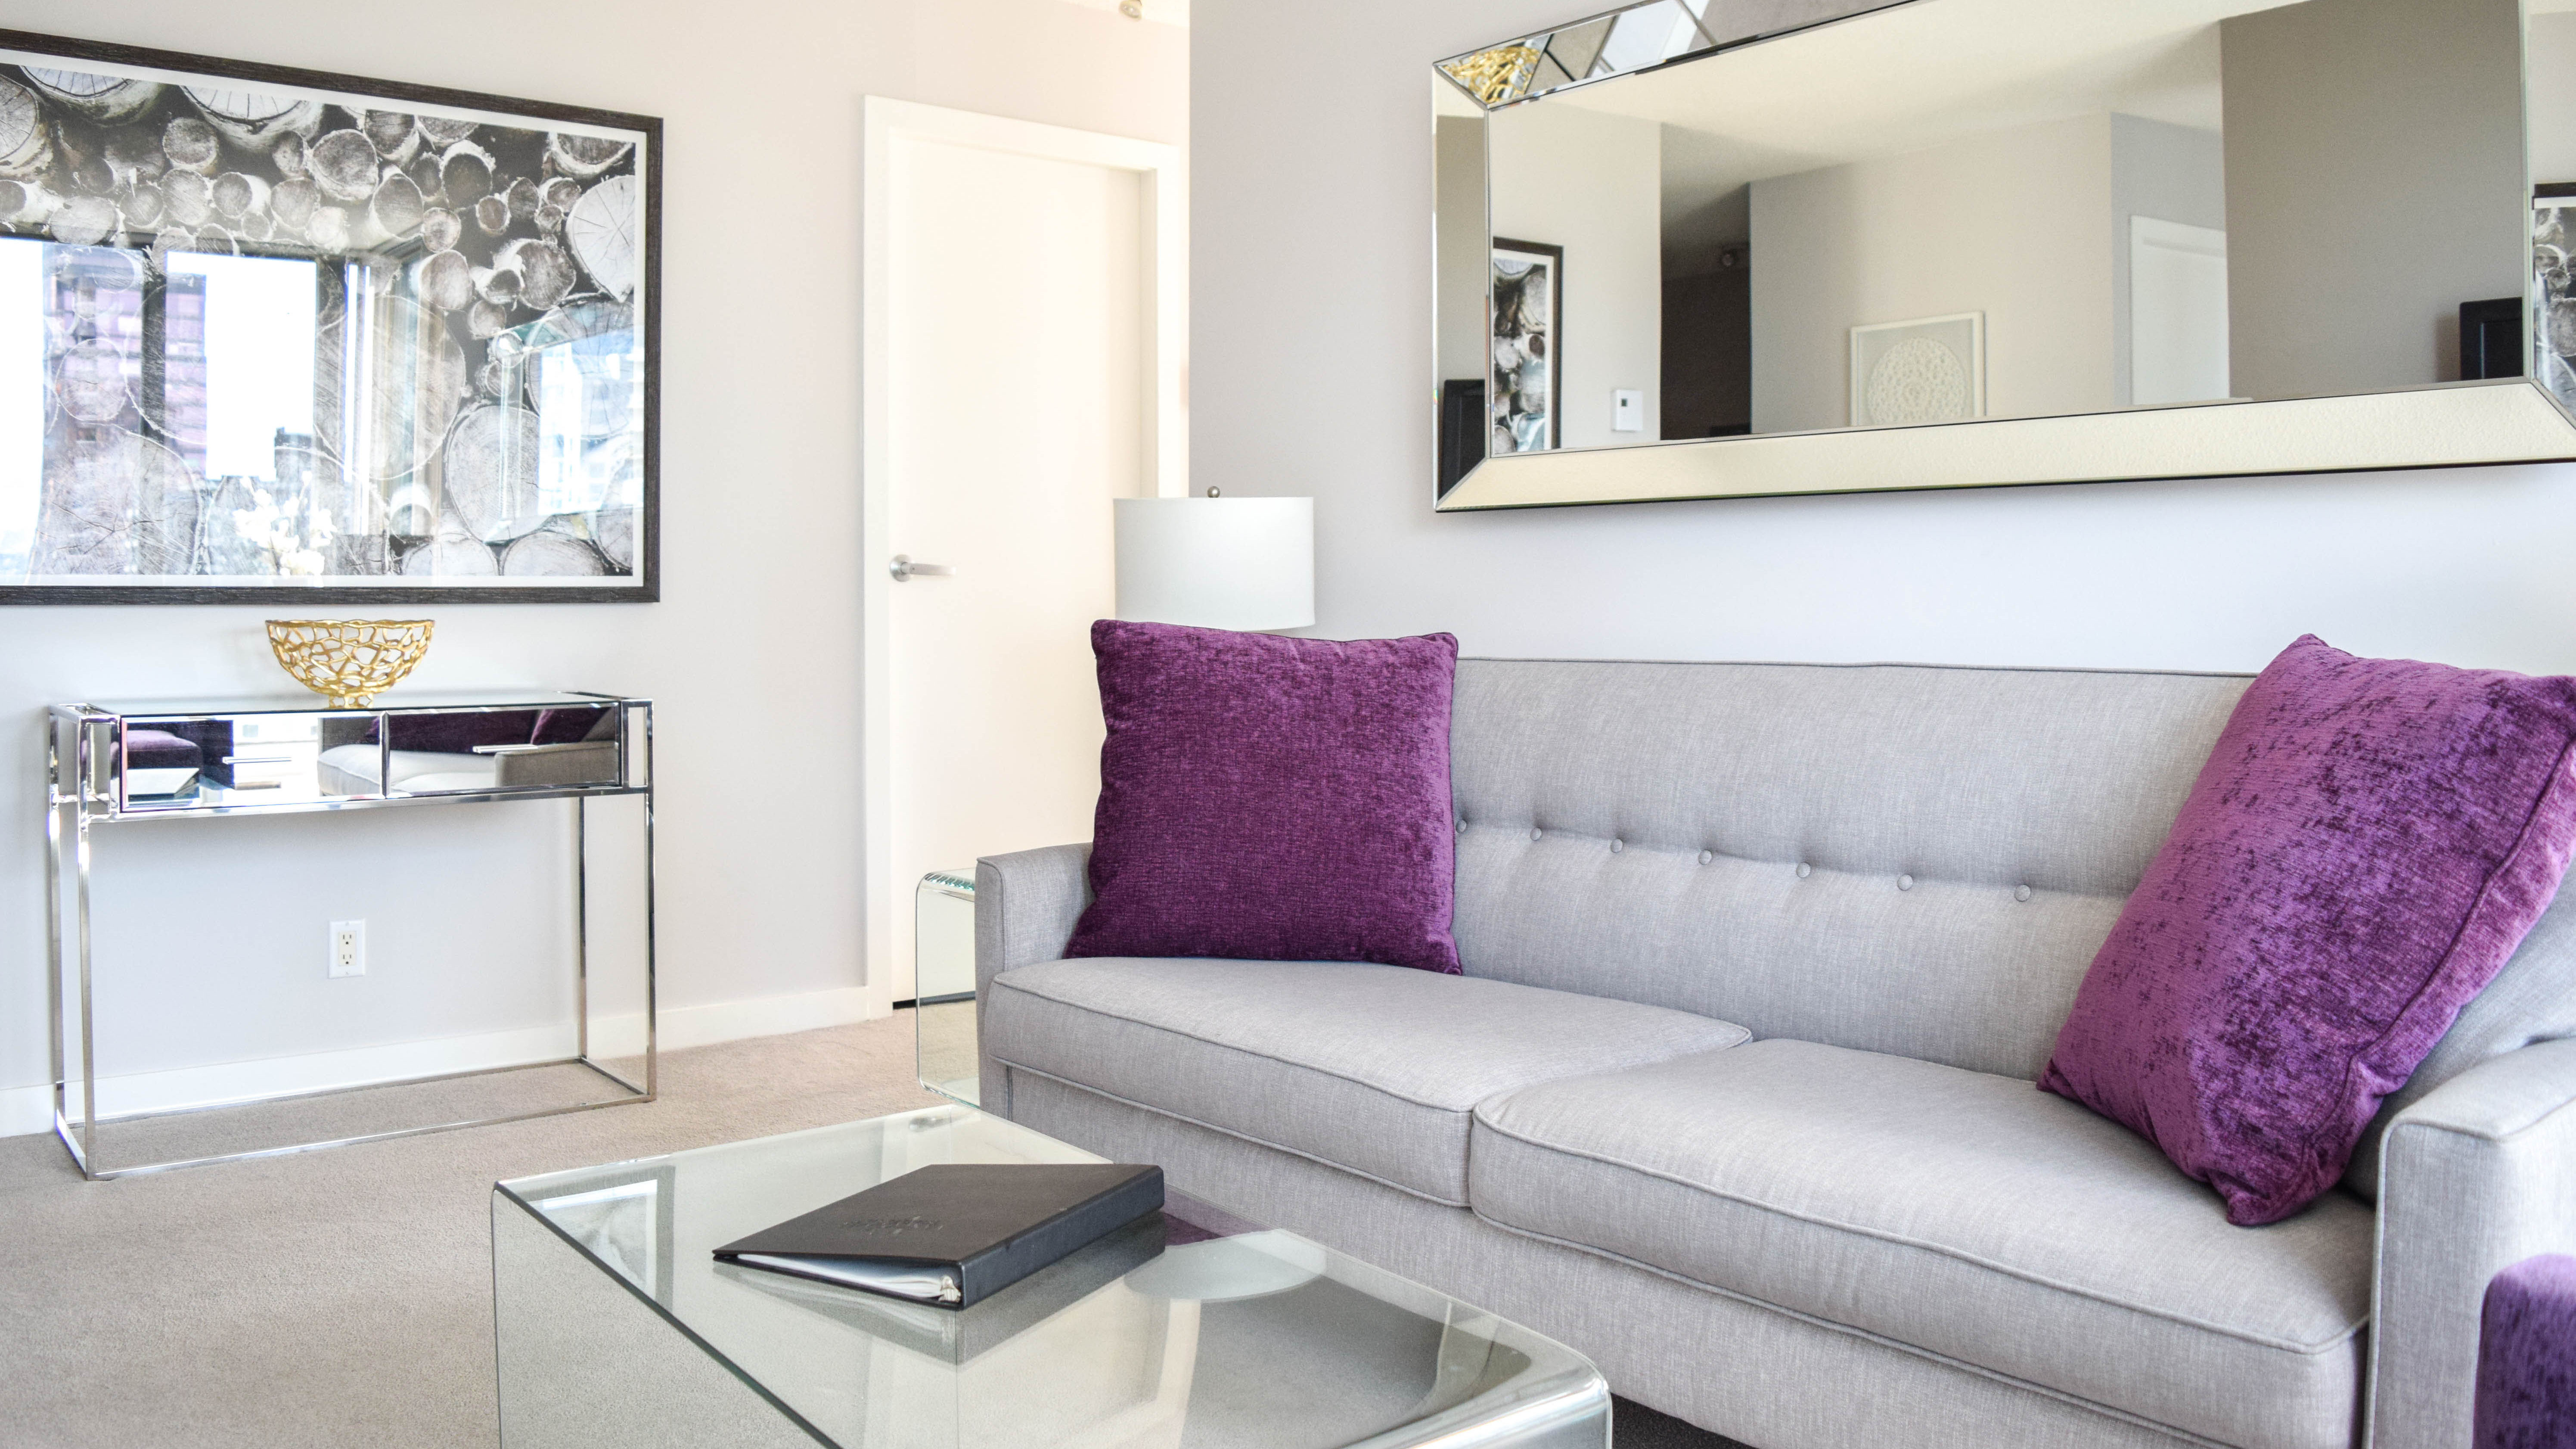 Photo of fully furnished apartment #1508 at The Residences on Georgia, 1288 West Georgia Street, Vancouver, BC